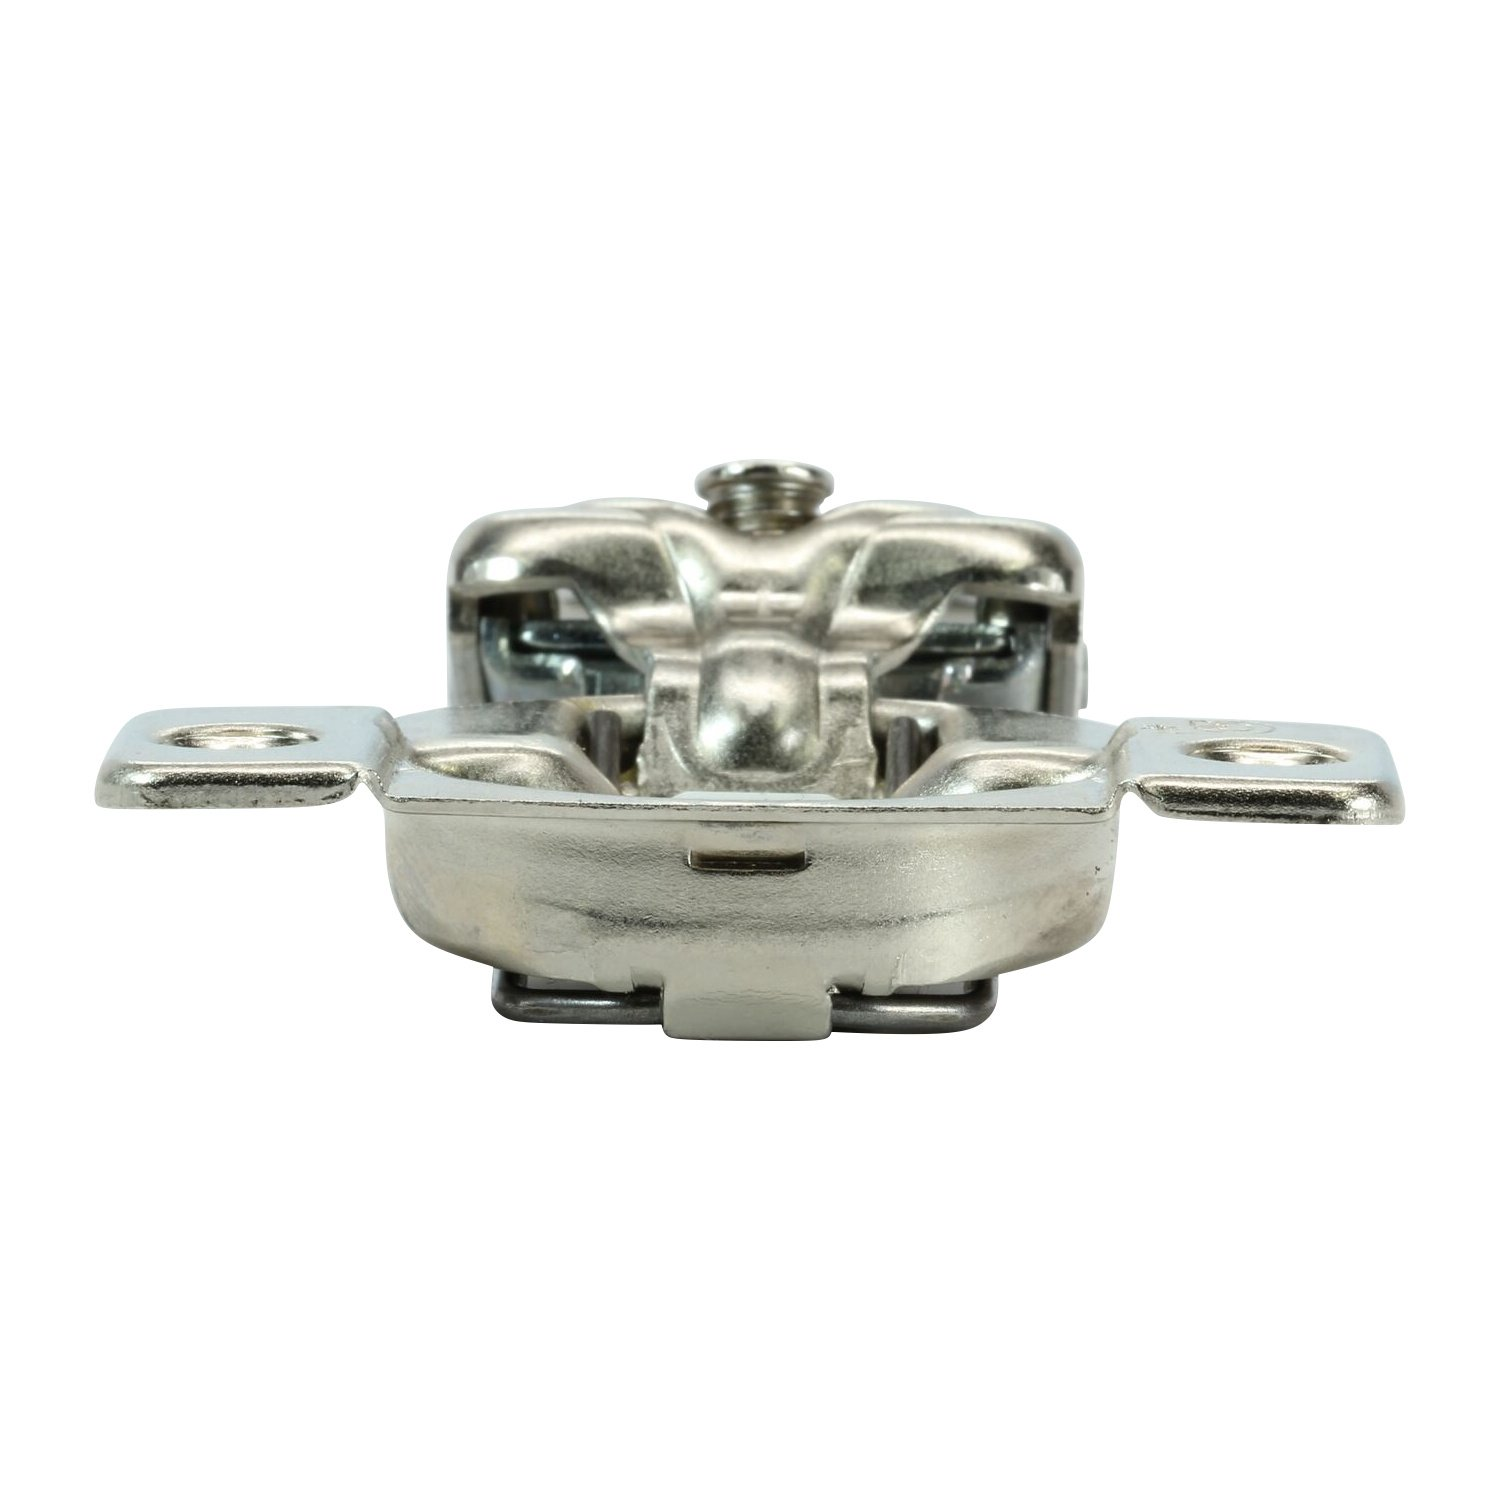 25 Pack Rok Hardware Grass TEC 864 108 Degree 3/4'' Overlay 3 Level Soft Close Screw On Compact Cabinet Hinge 04432A-15 3-Way Adjustment 45mm Boring Pattern by Rok (Image #8)